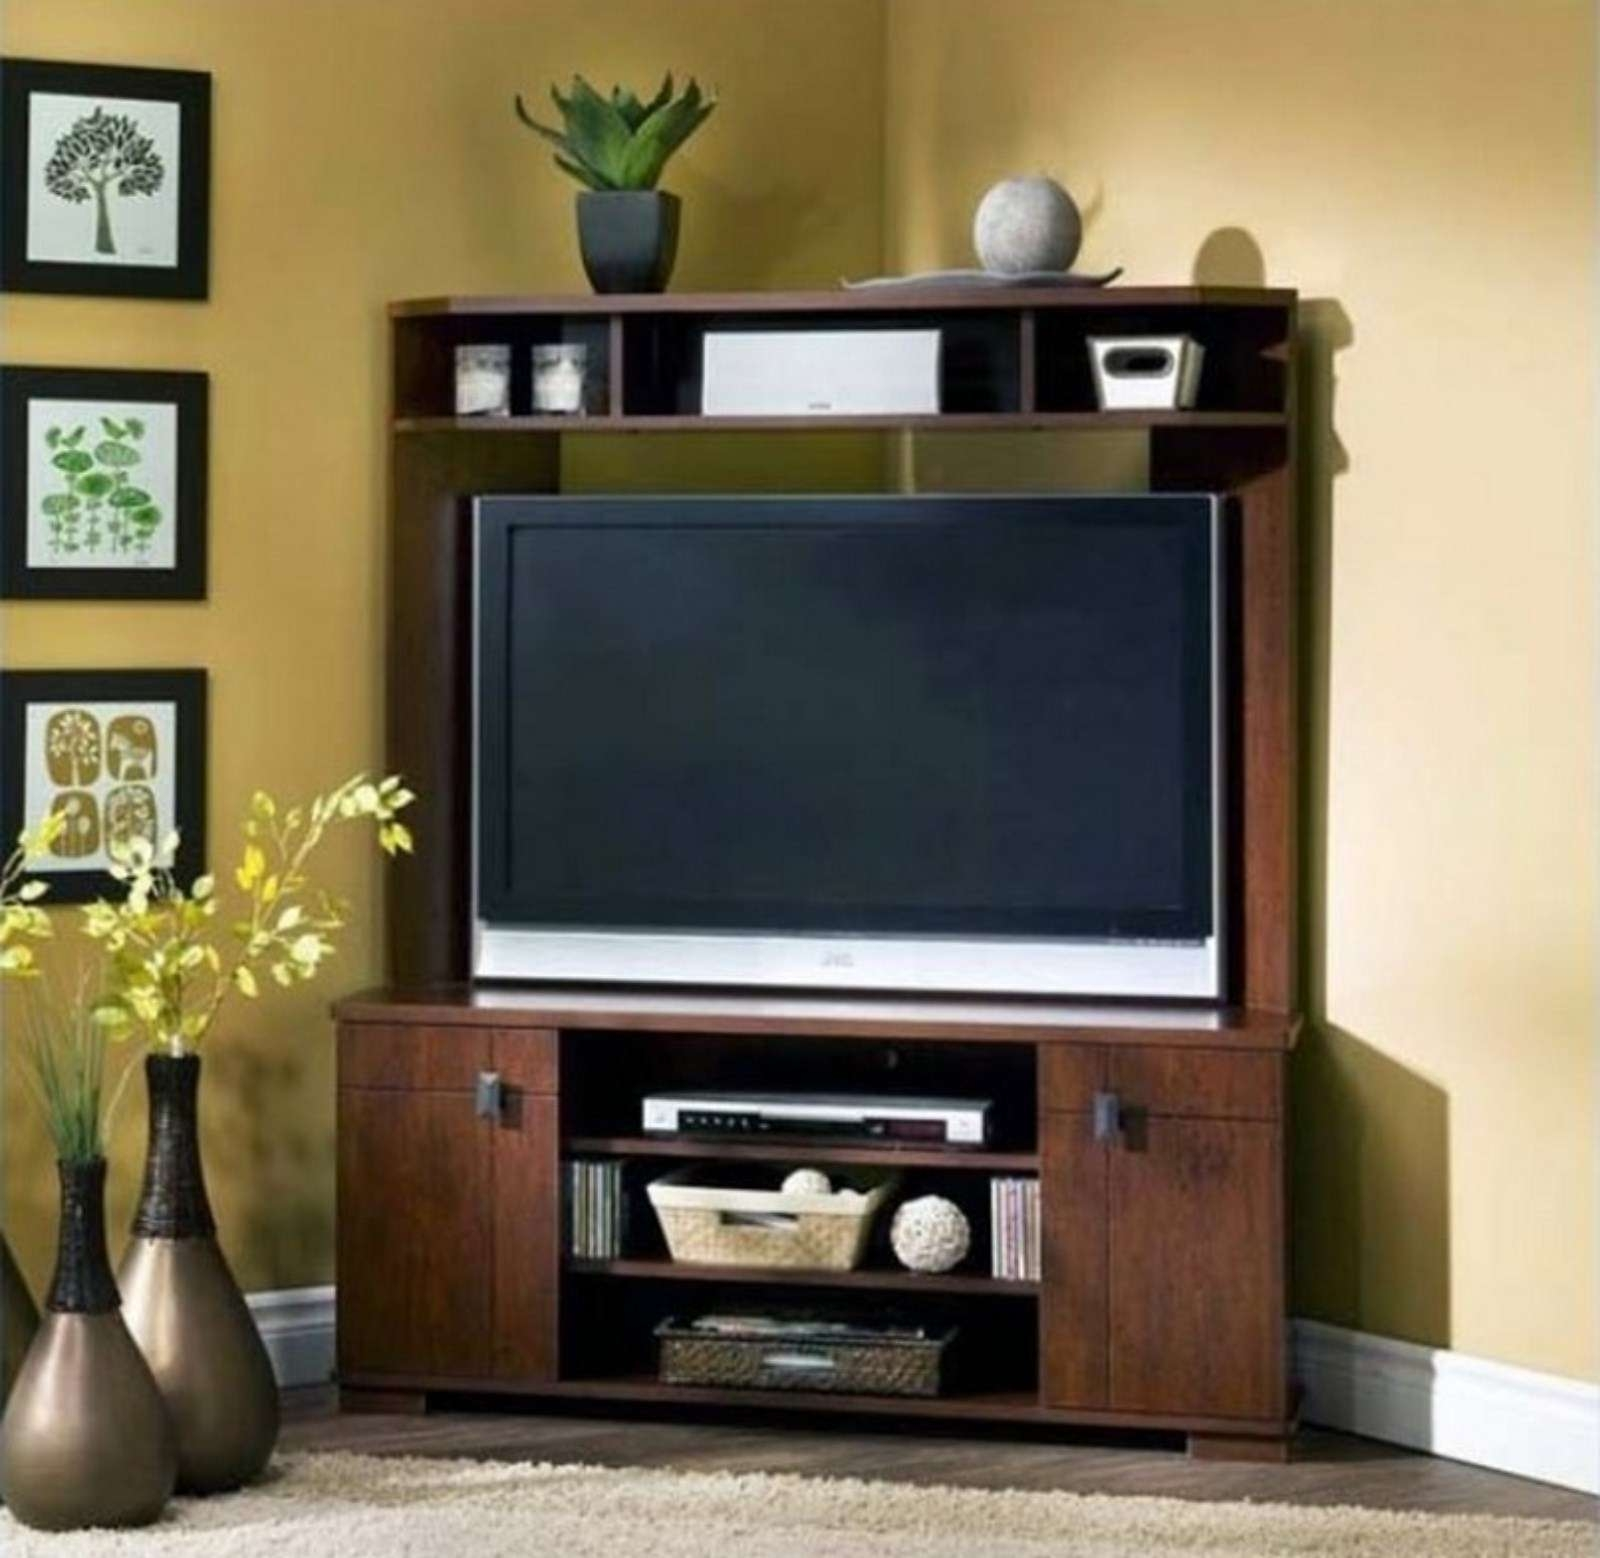 Tv Stand : Stirring Corner Tv Stand For Inch Photo Concept Flat Inside Corner Tv Stands For 55 Inch Tv (View 13 of 15)